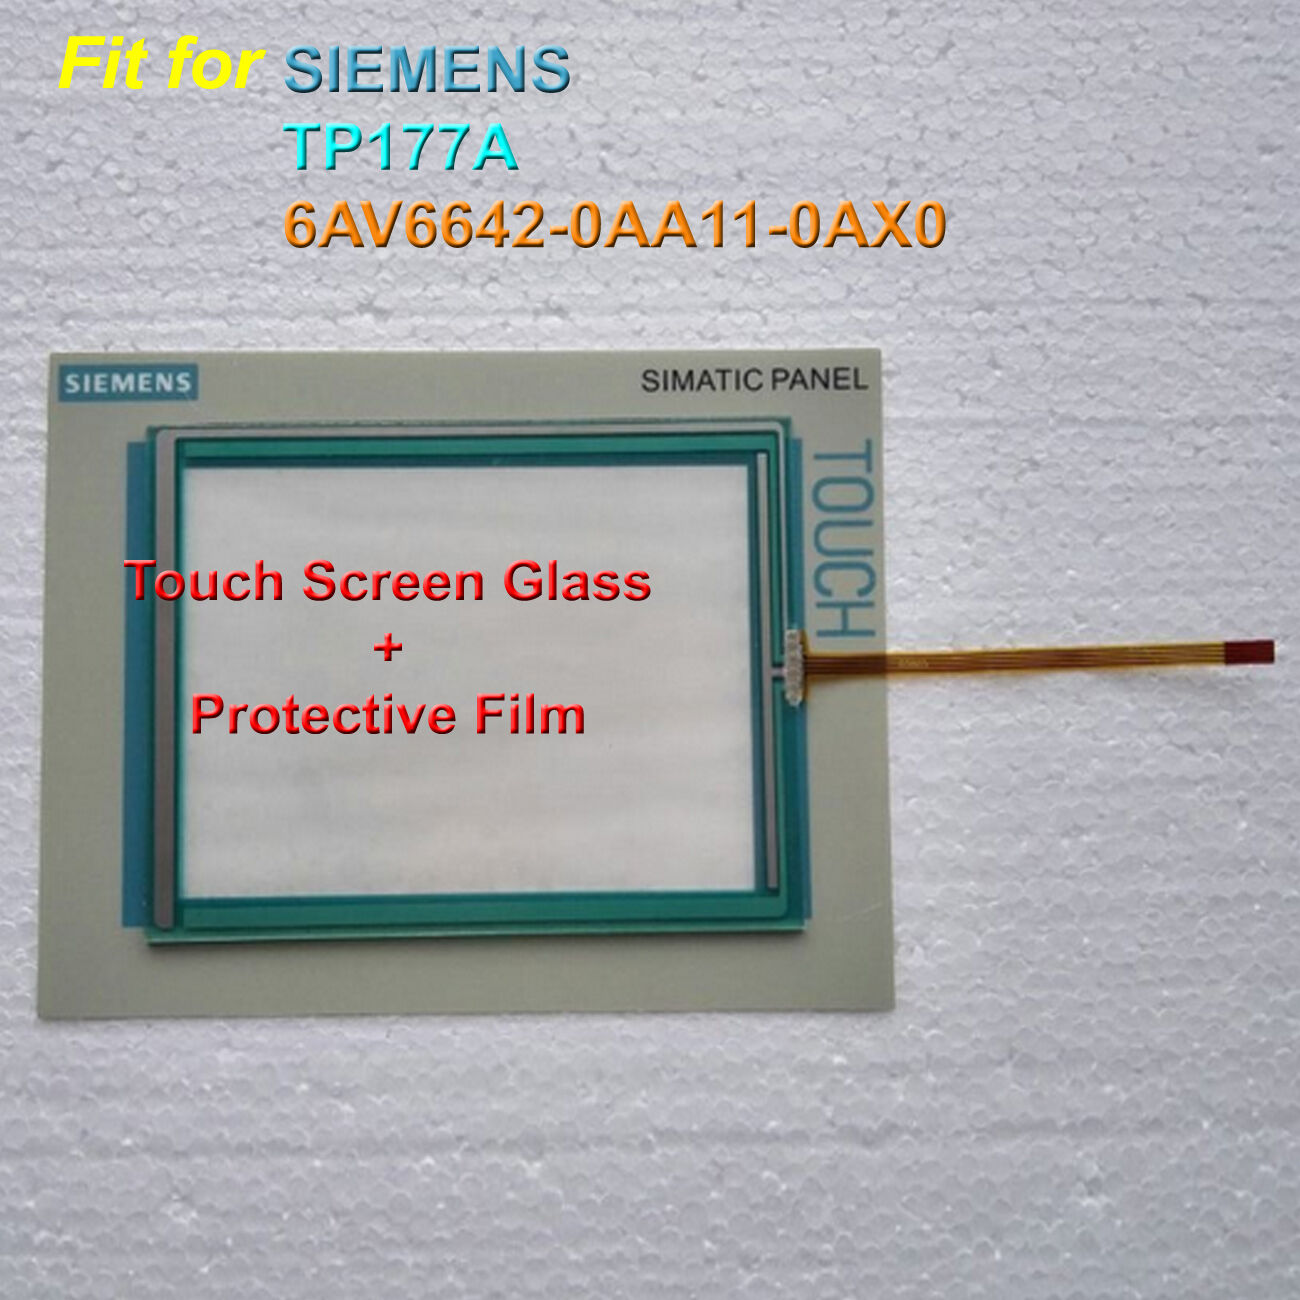 Touch Screen Glass + Predective Film for SIEMENS 6AV6642-0AA11-0AX0 TP177A